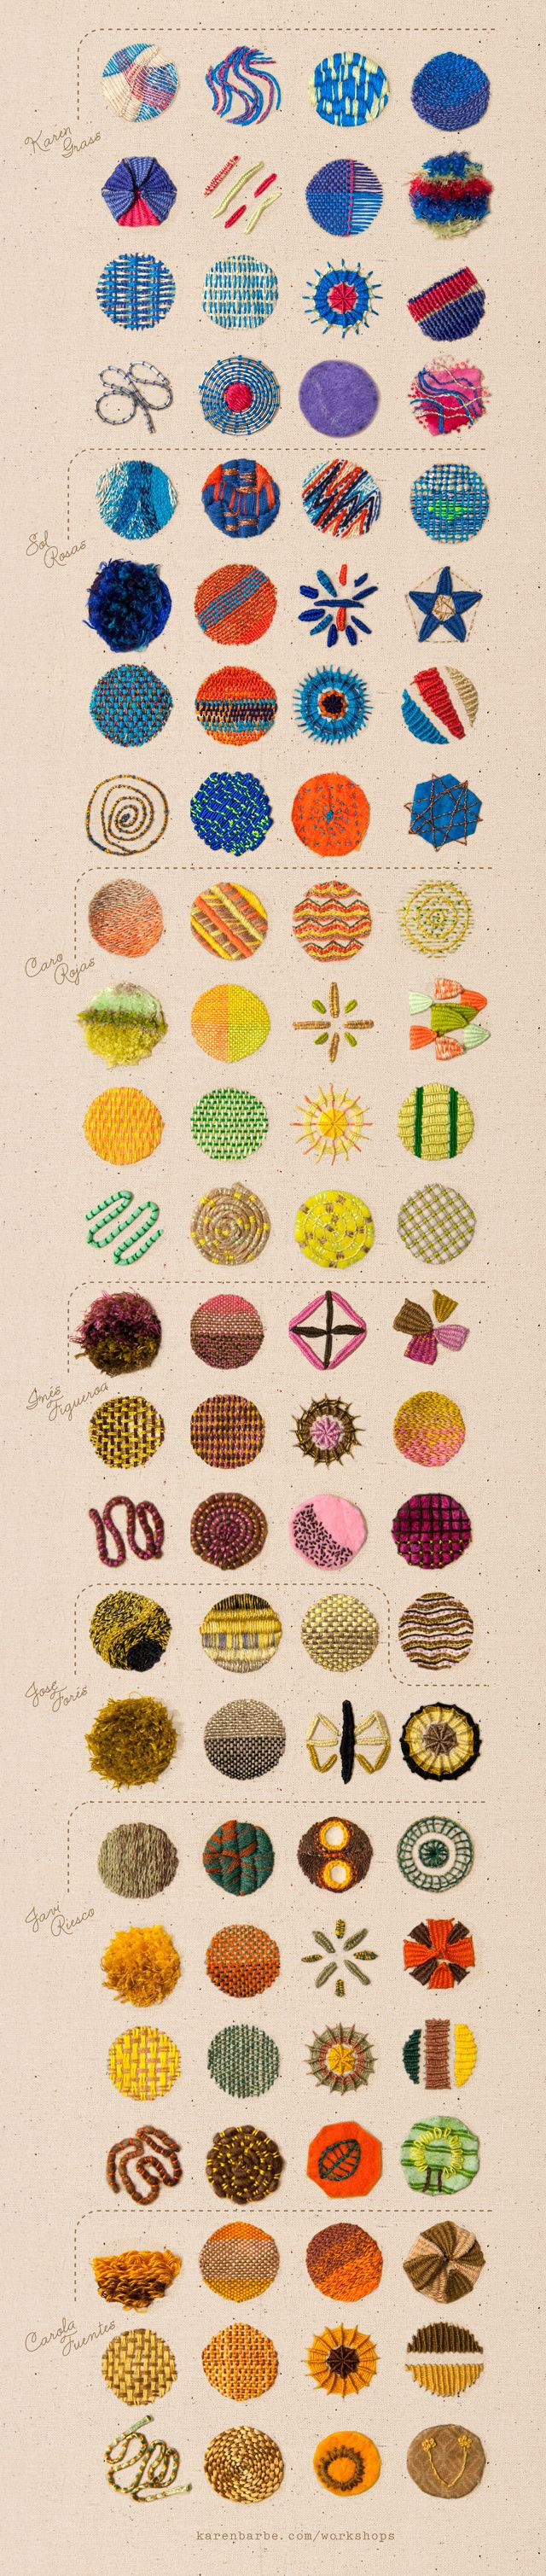 Different types hand embroidery stitches | Pinterest | Bordado ...